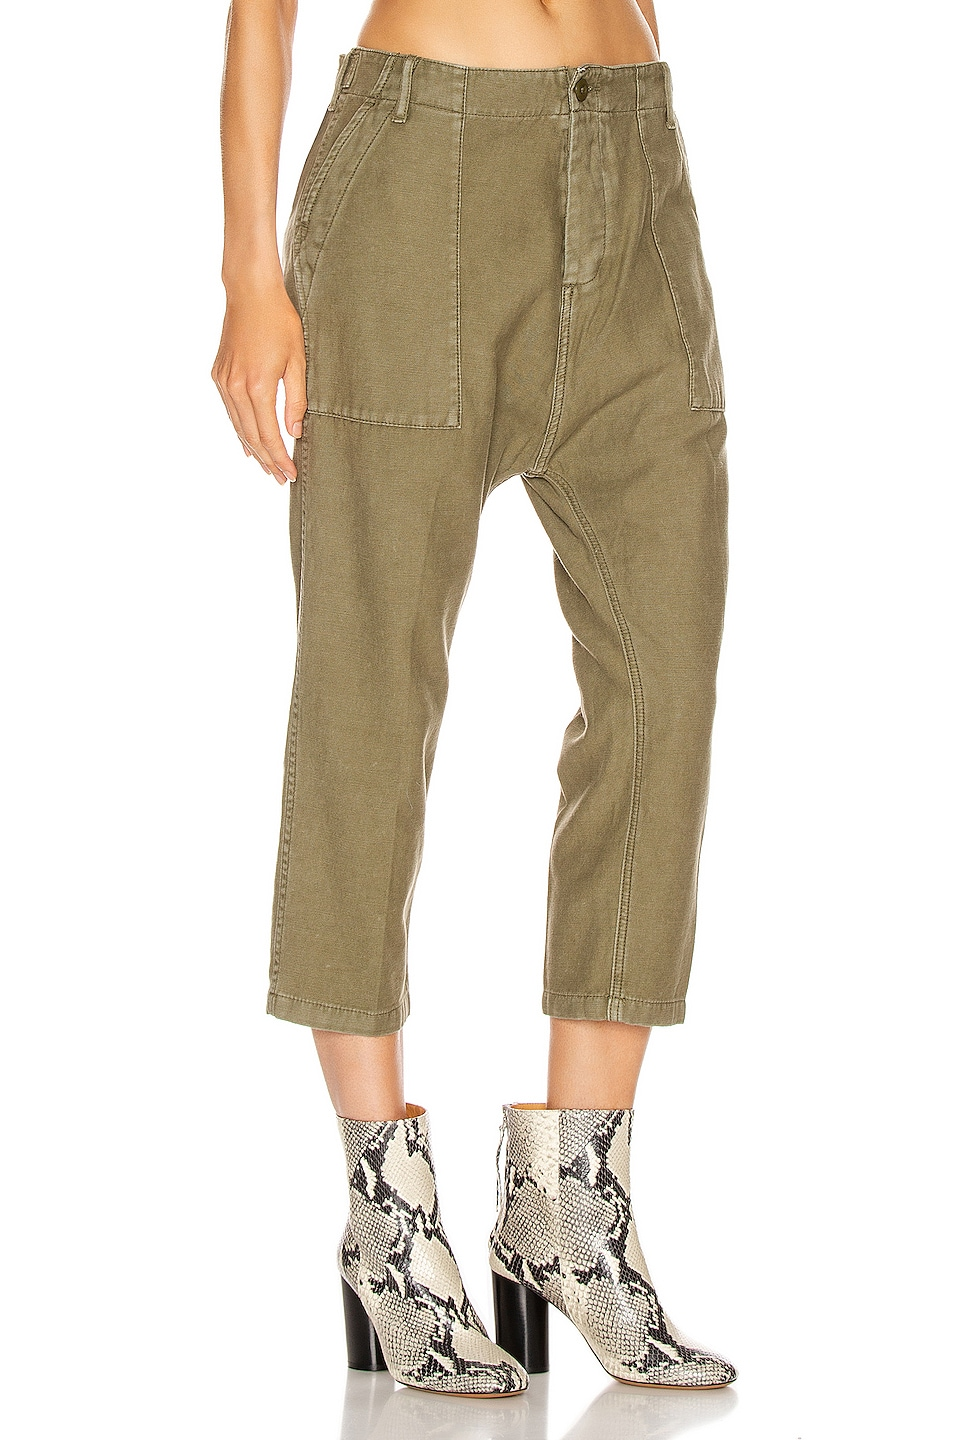 Image 2 of R13 Utility Drop Crotch Pant in Fatigue Olive